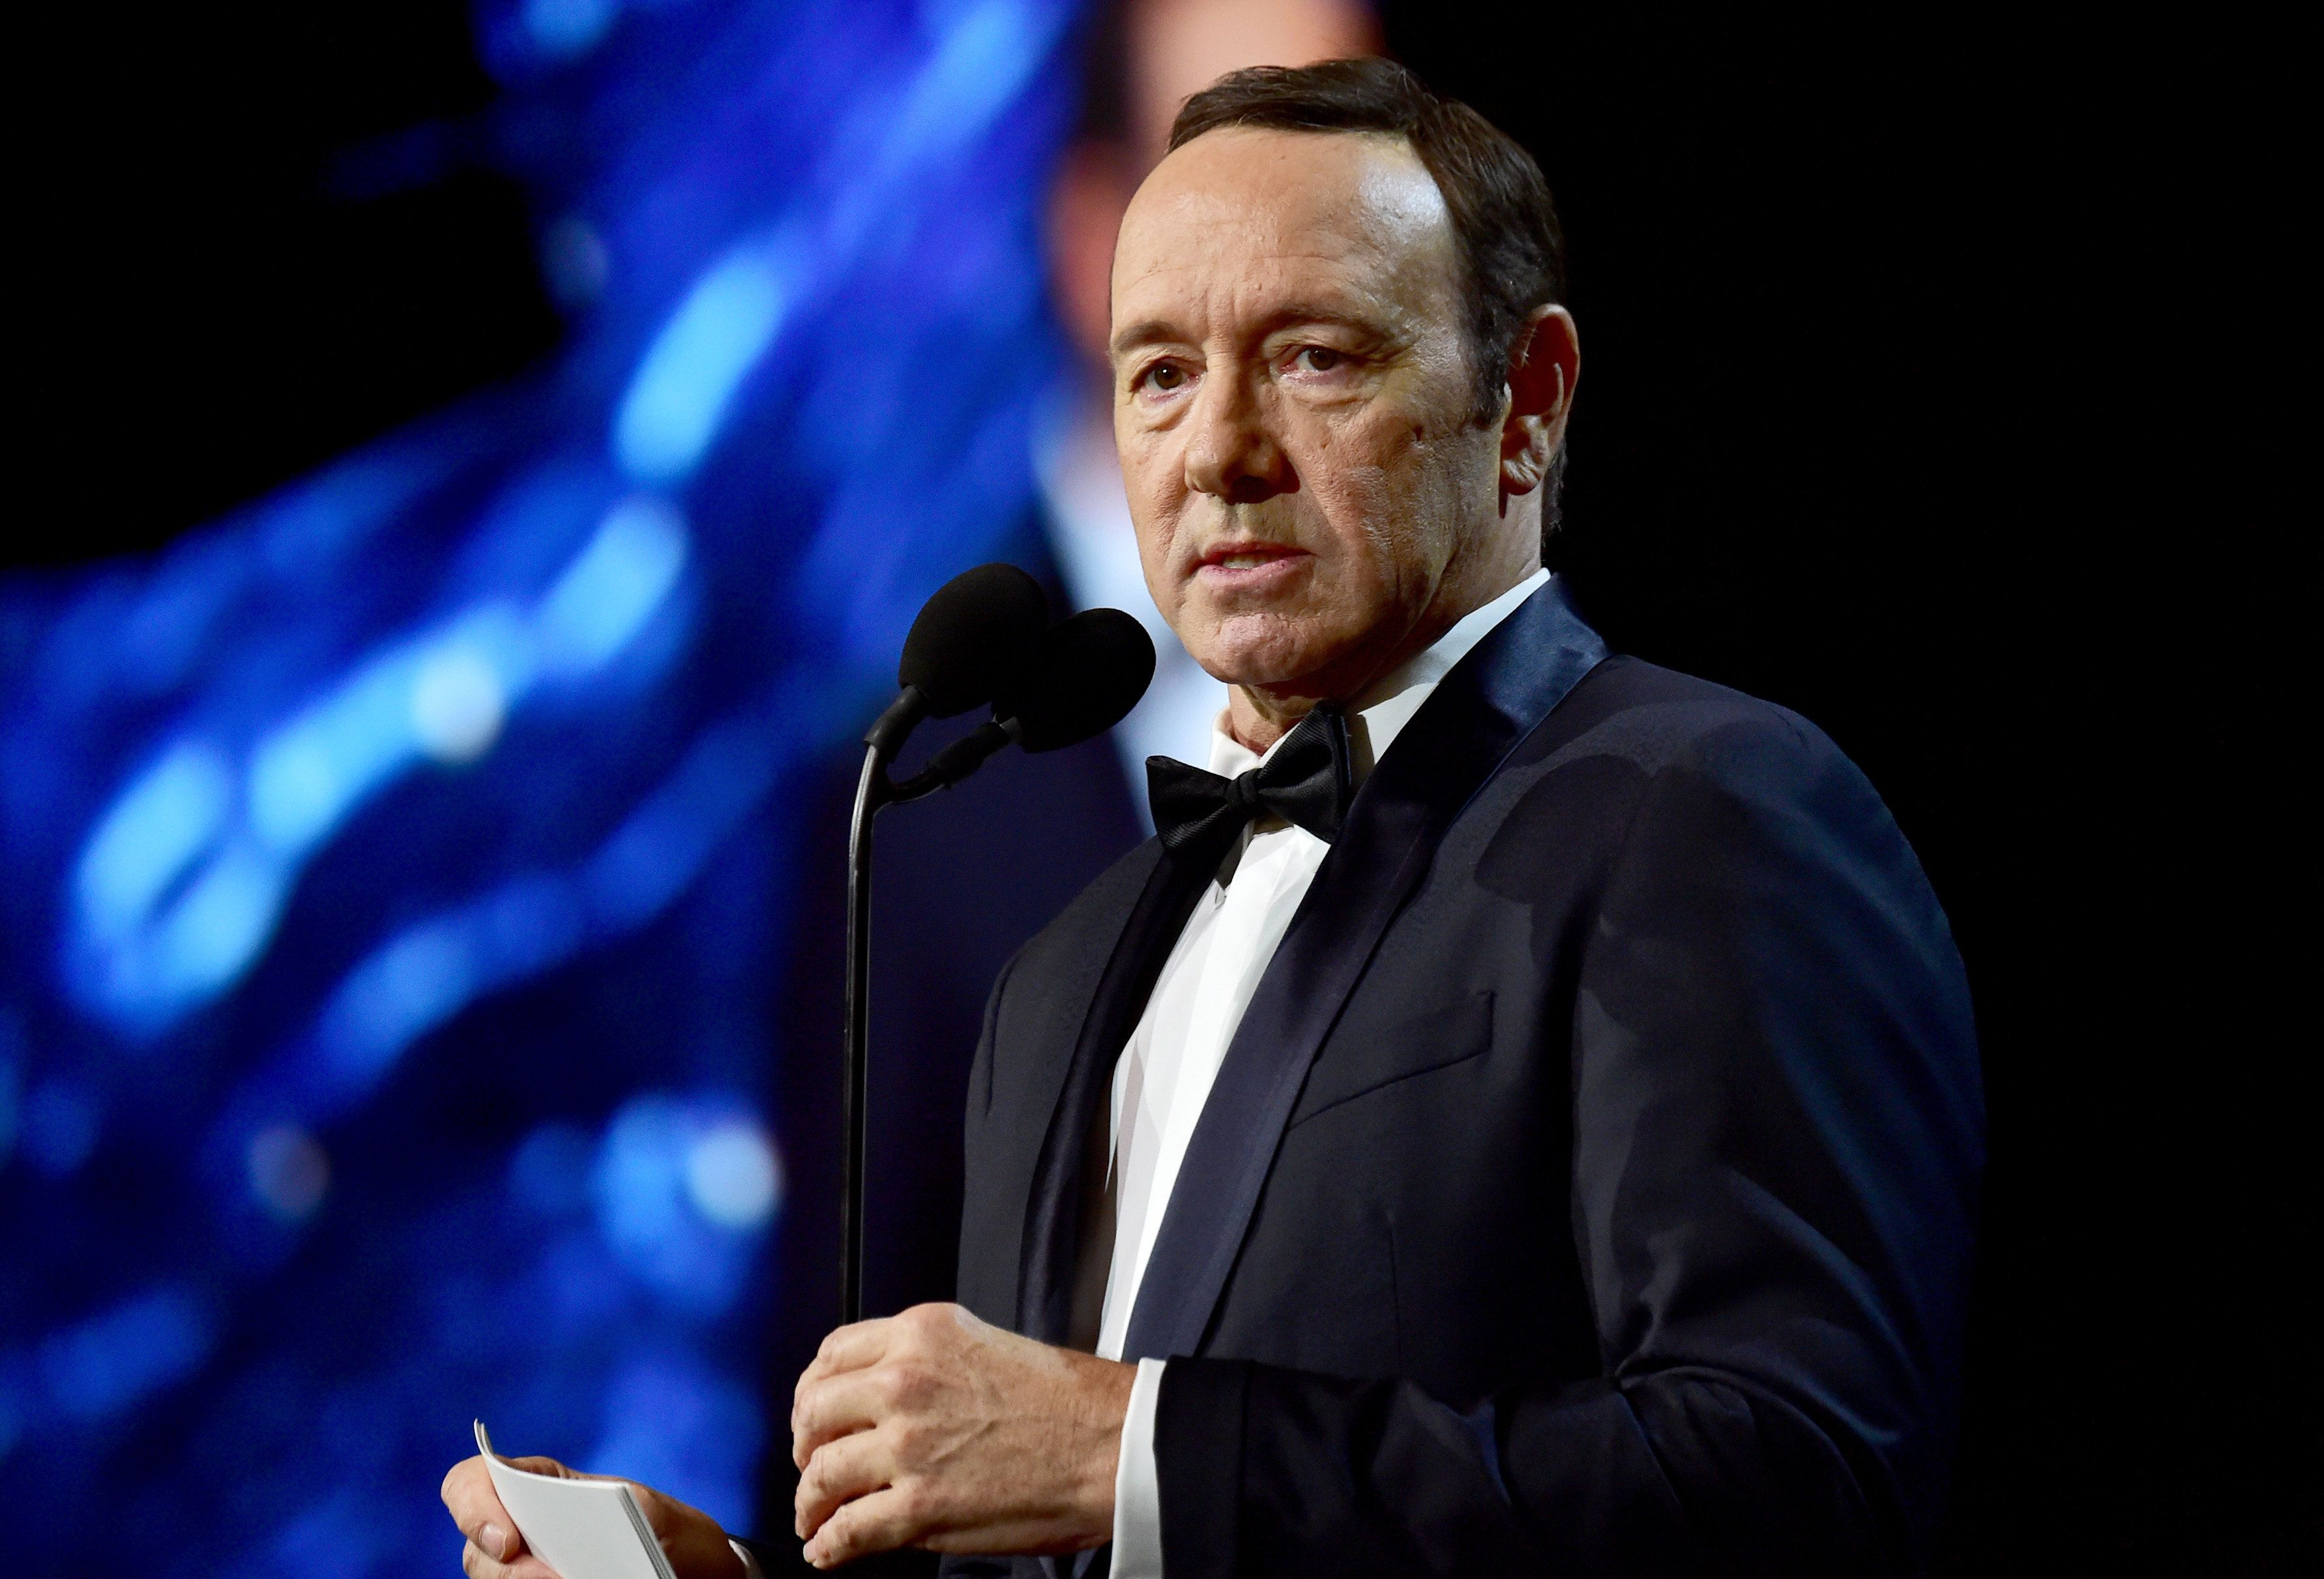 Kevin Spacey Returns To Spotlight In Trailer For First Film Since Abuse